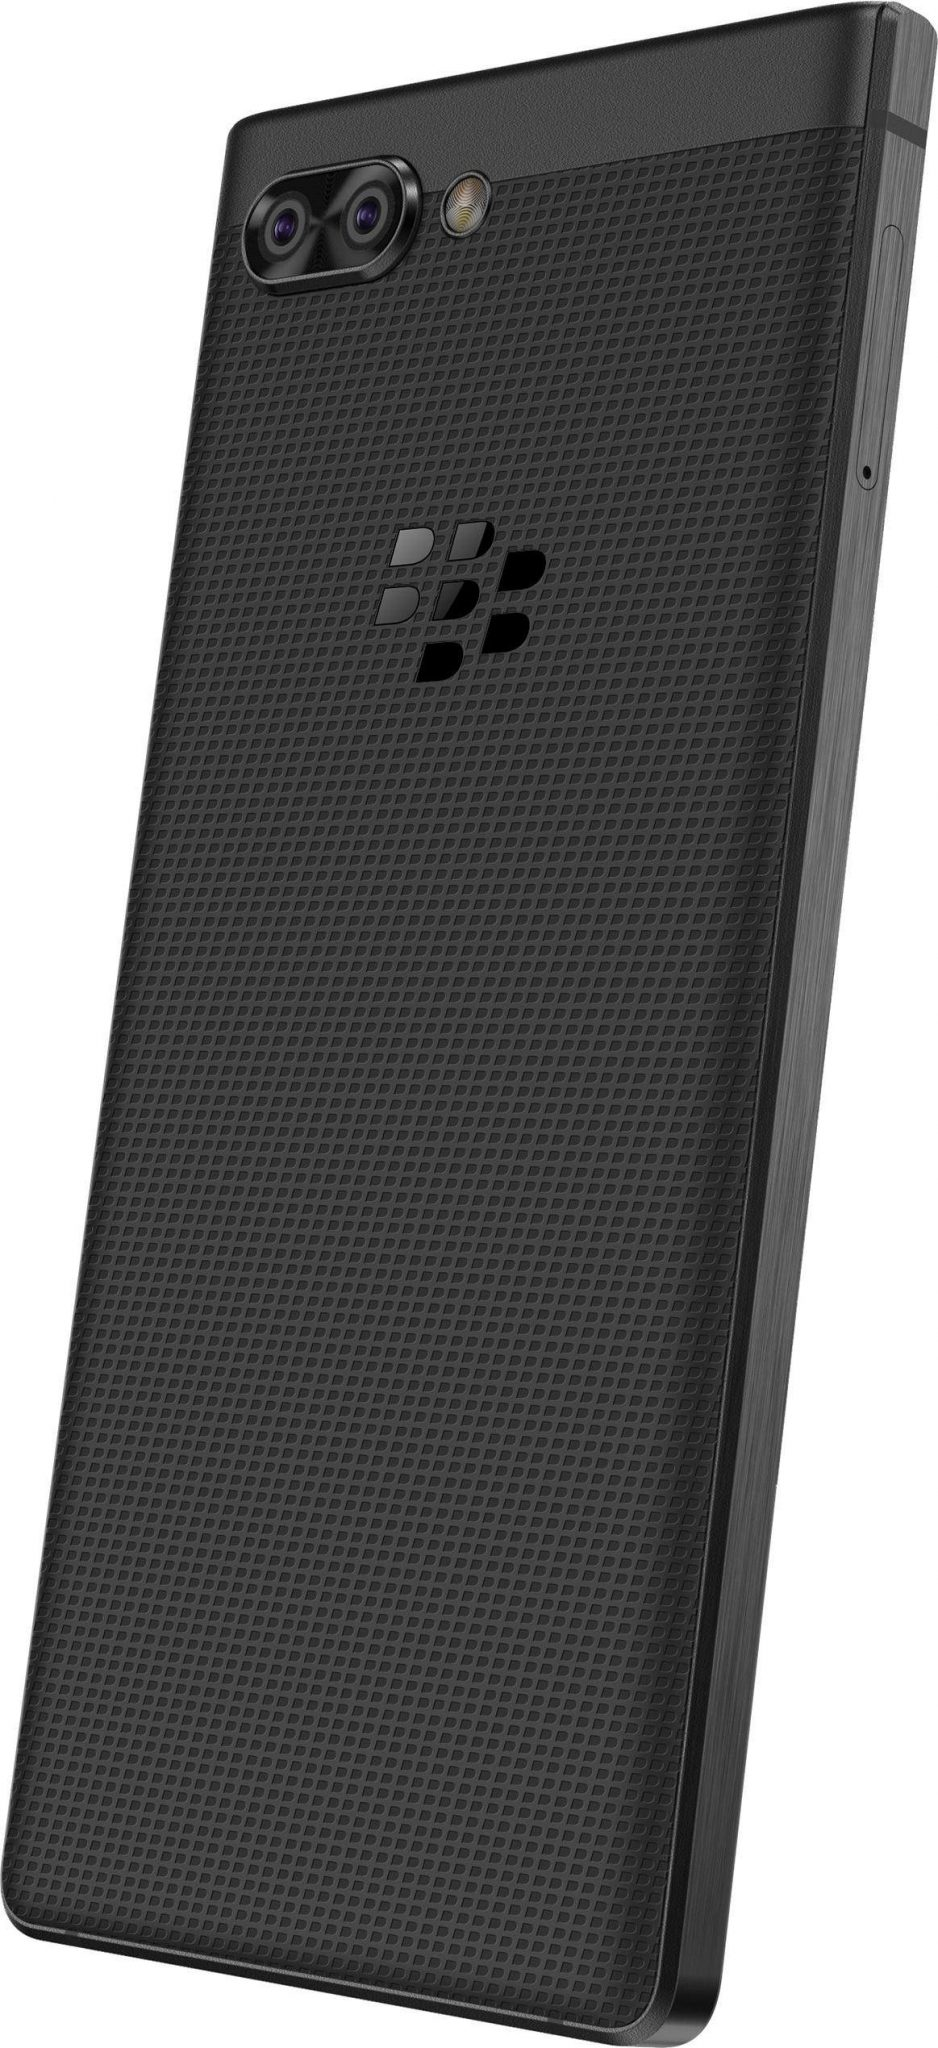 Blackberry Key2 Rear